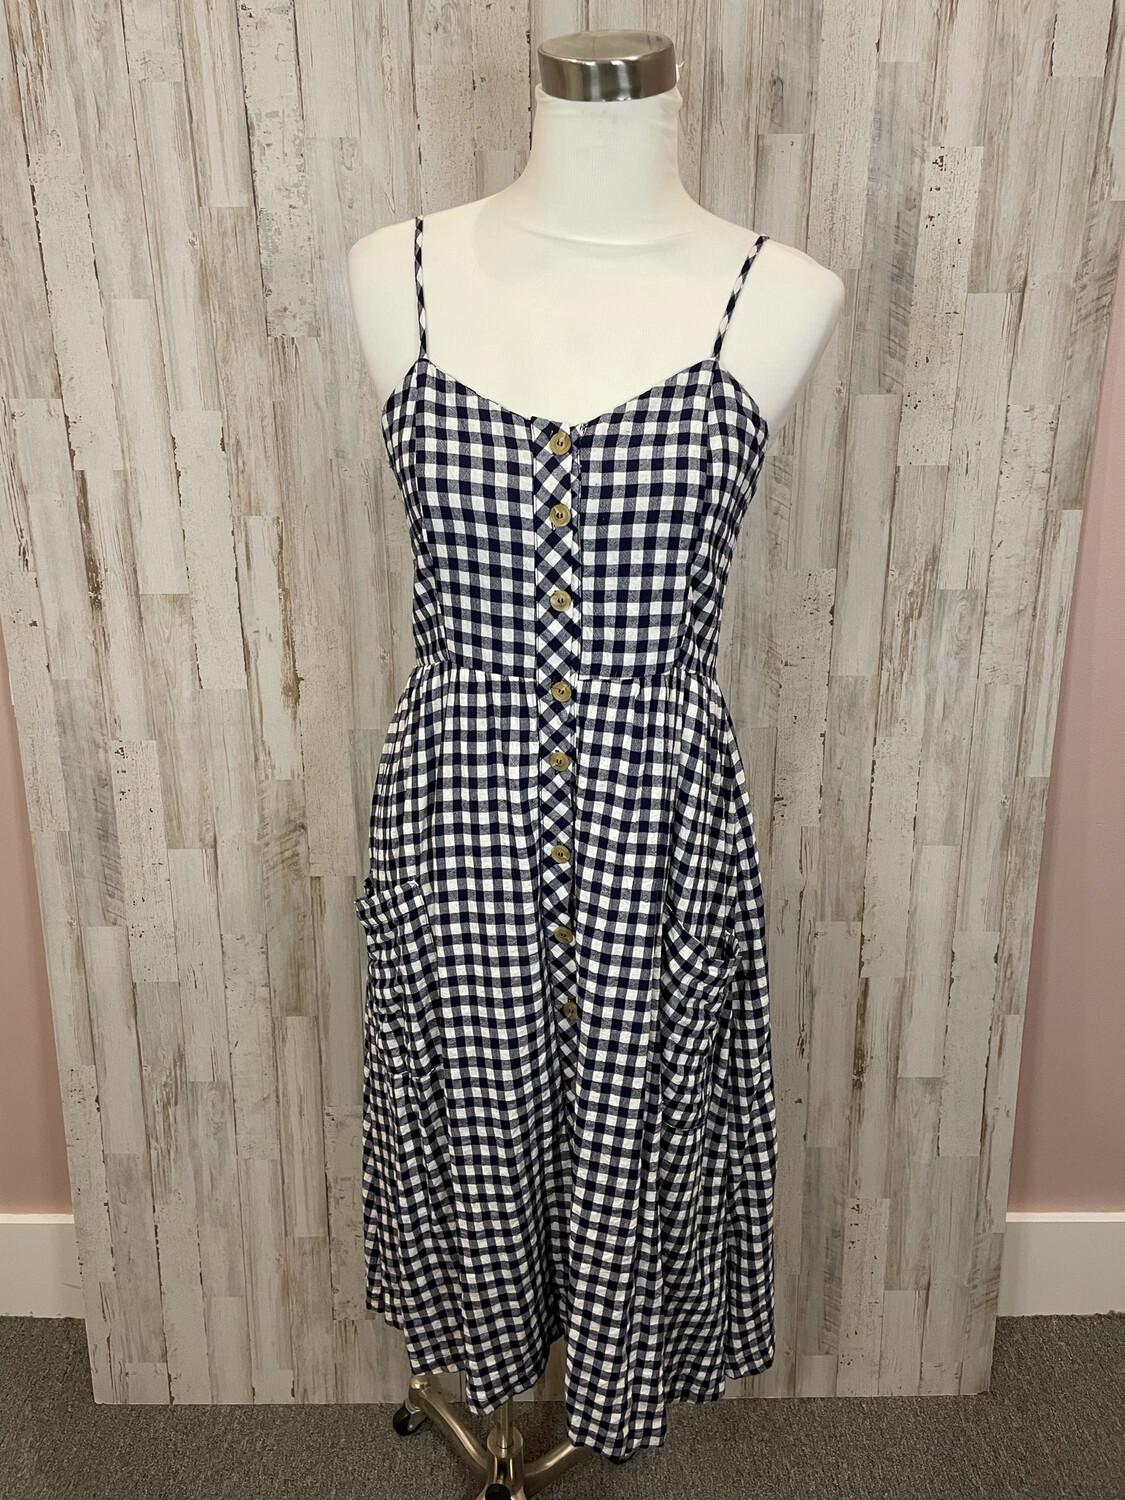 Hem & Thread Navy & White Plaid Midi Dress w/ Buttons - M